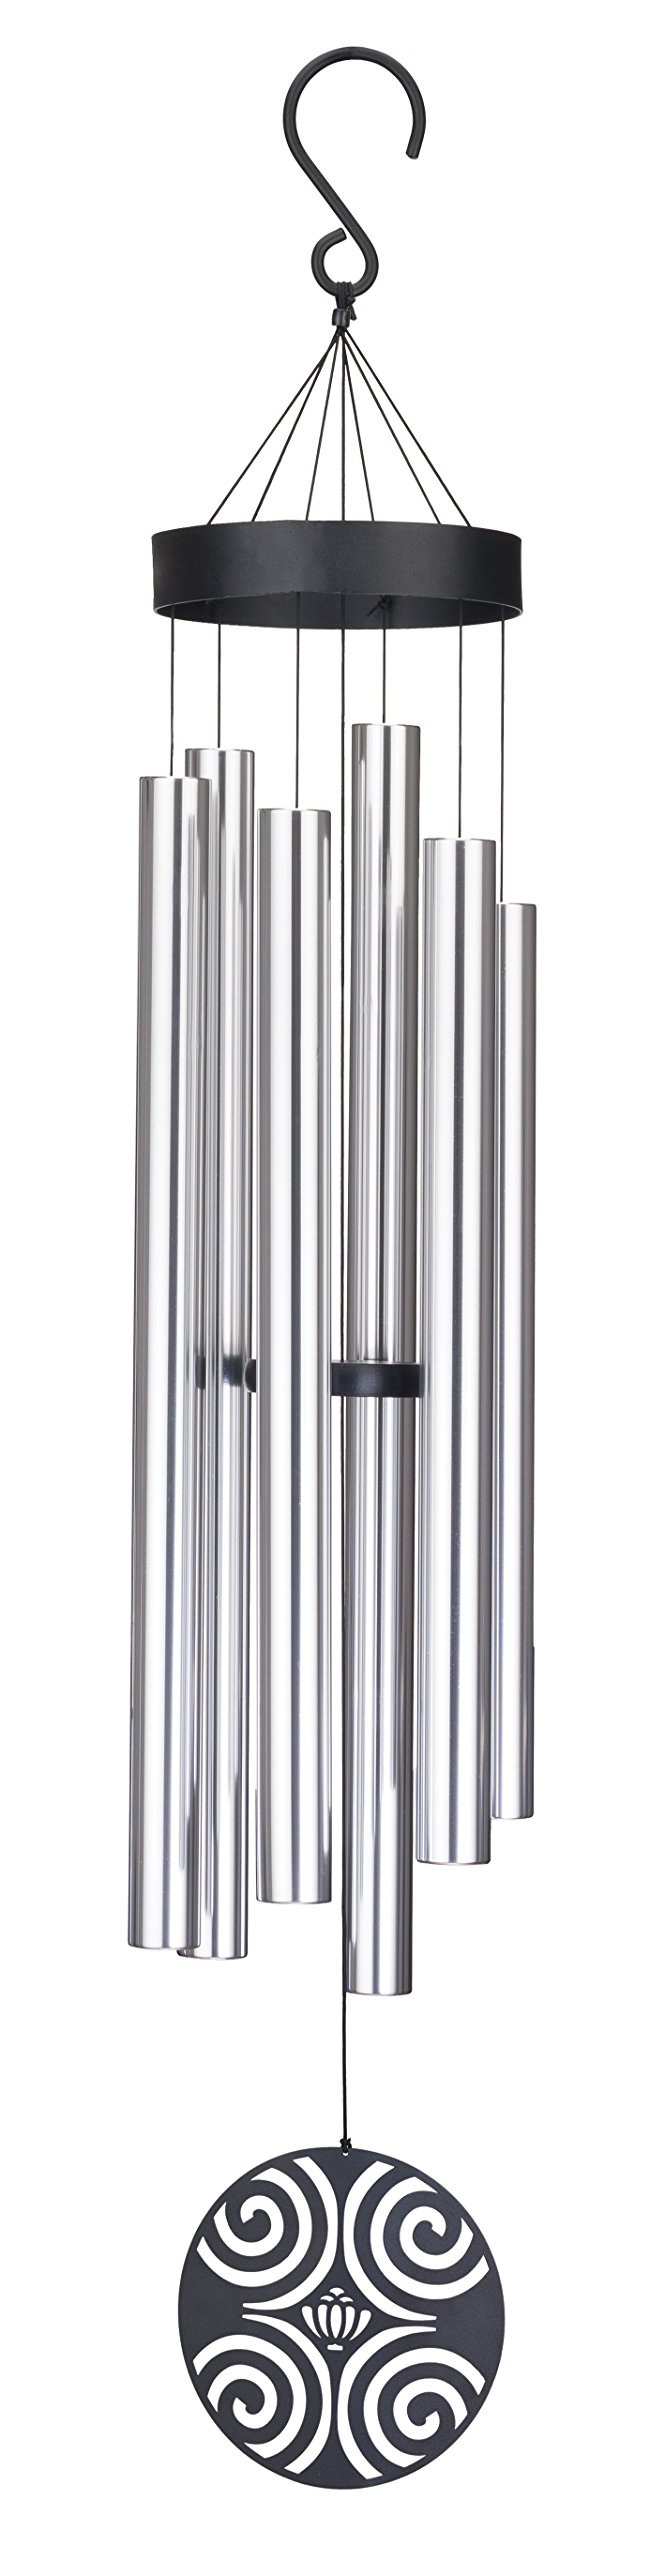 Regal Art & Gift 11154 Majestic Chime, 58'' by Regal Art & Gift